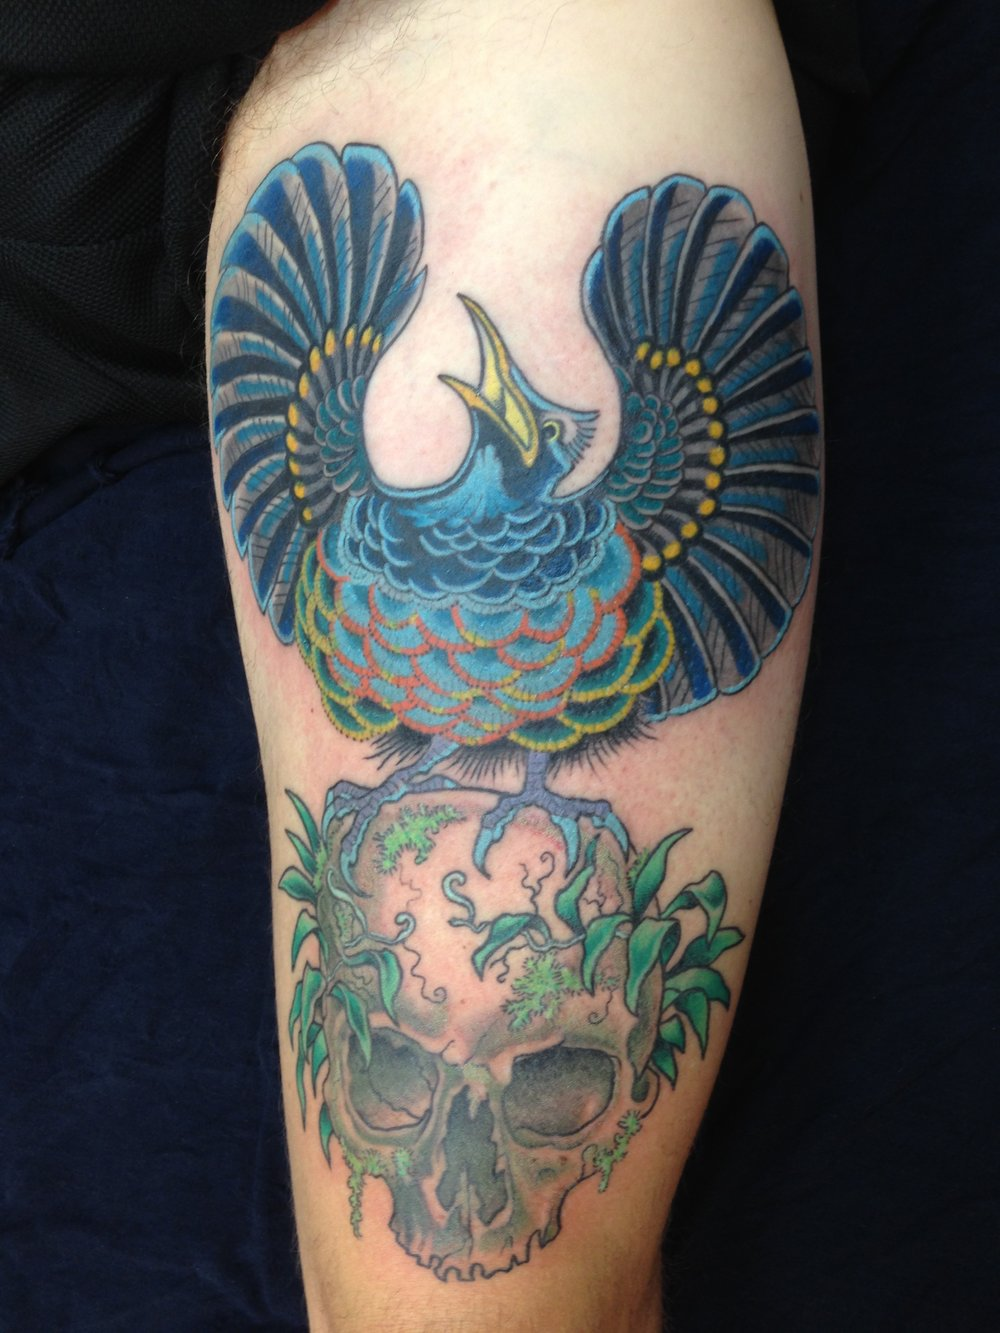 riflebird-tattoo-megan-oliver.jpg